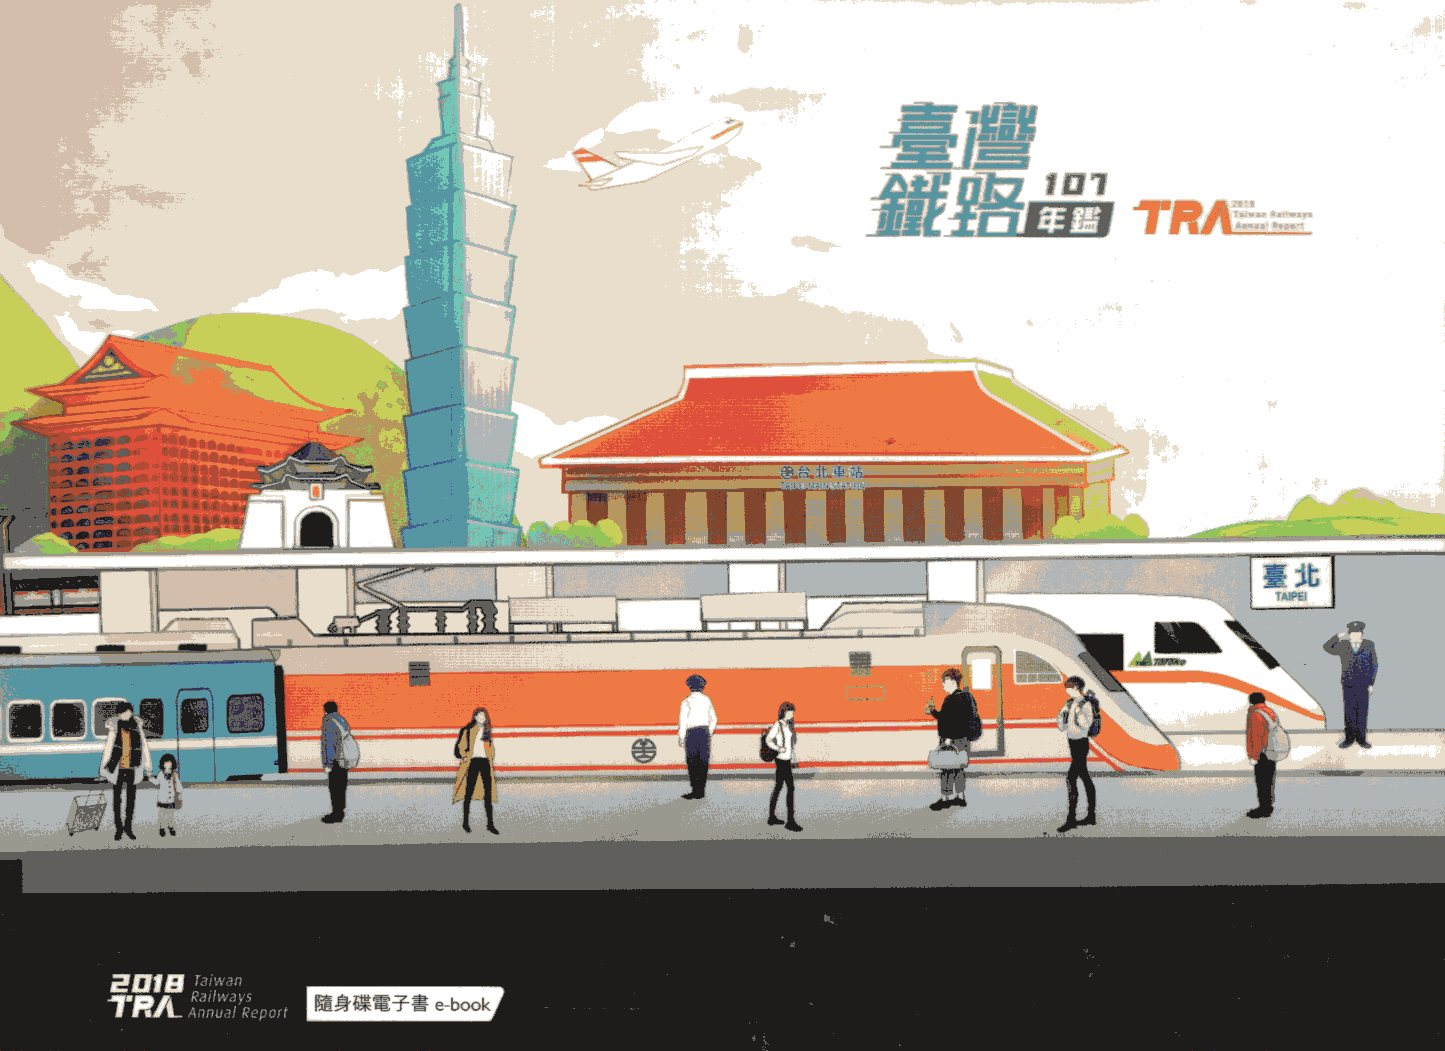 106臺灣鐵路年鑑 2017 Taiwan Railways Annual Report (光碟)